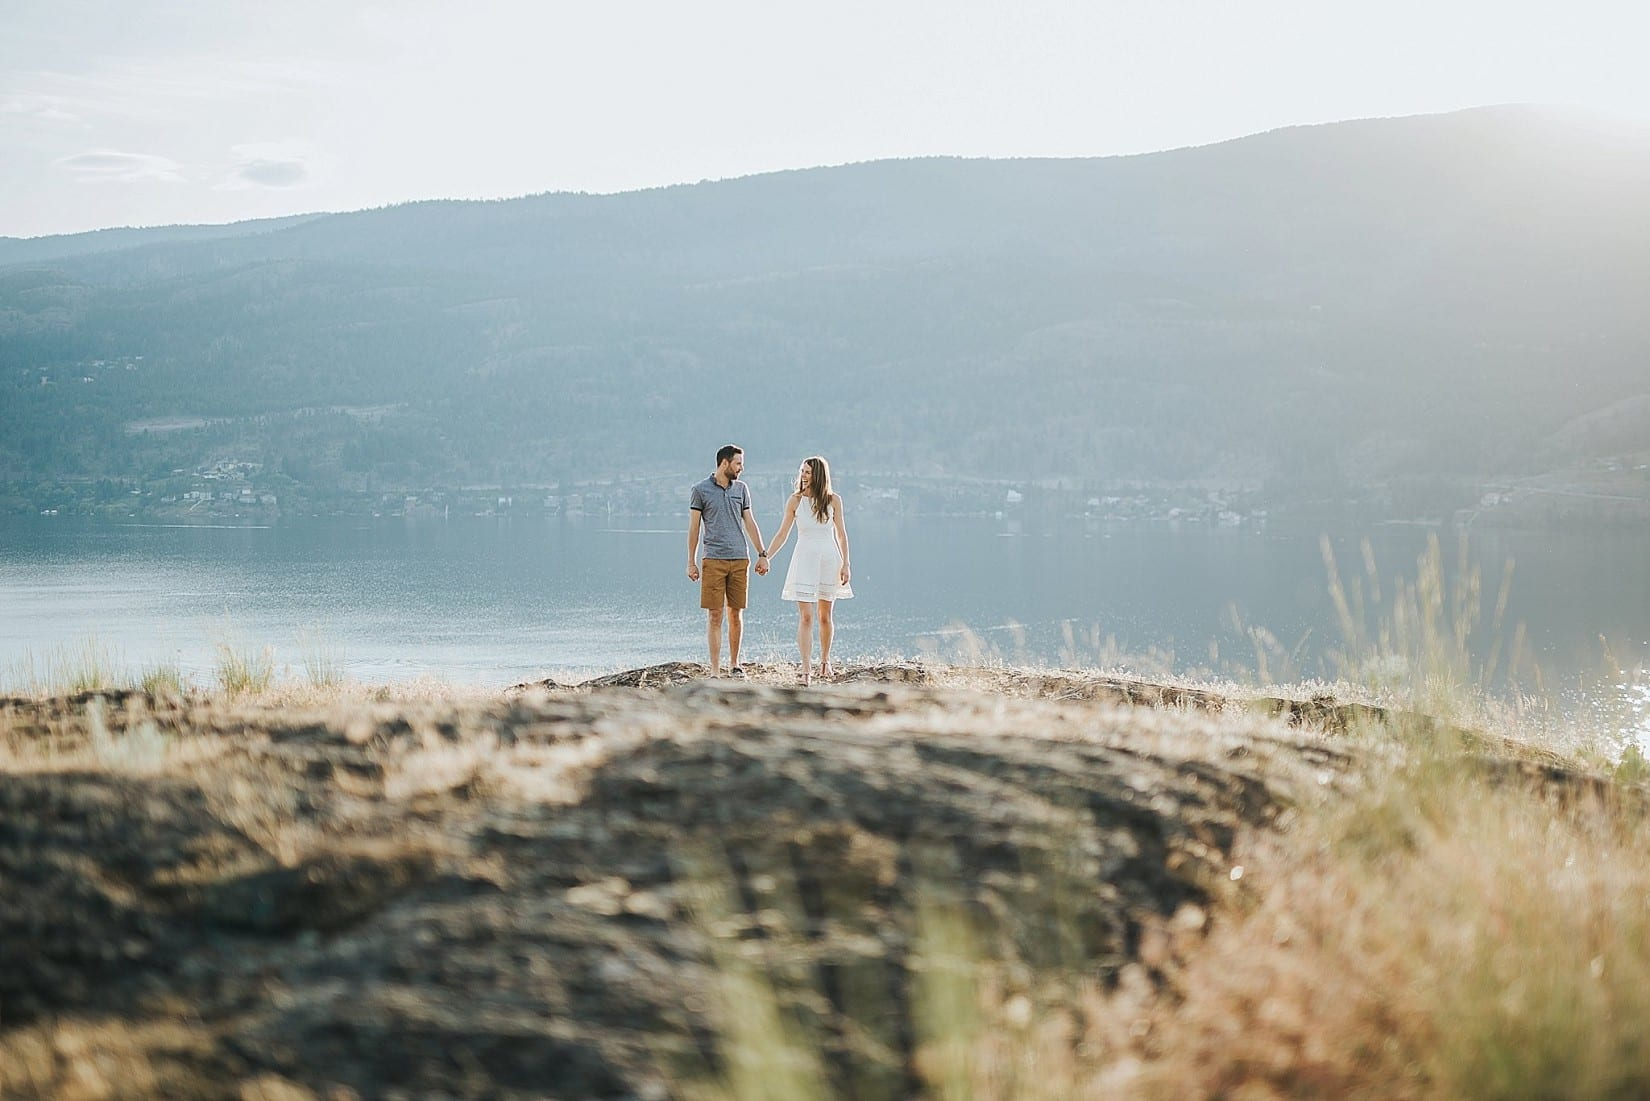 Best of Kelowna Photographers Josh and Carly shooting this Knox mountain Engagement Photography session!